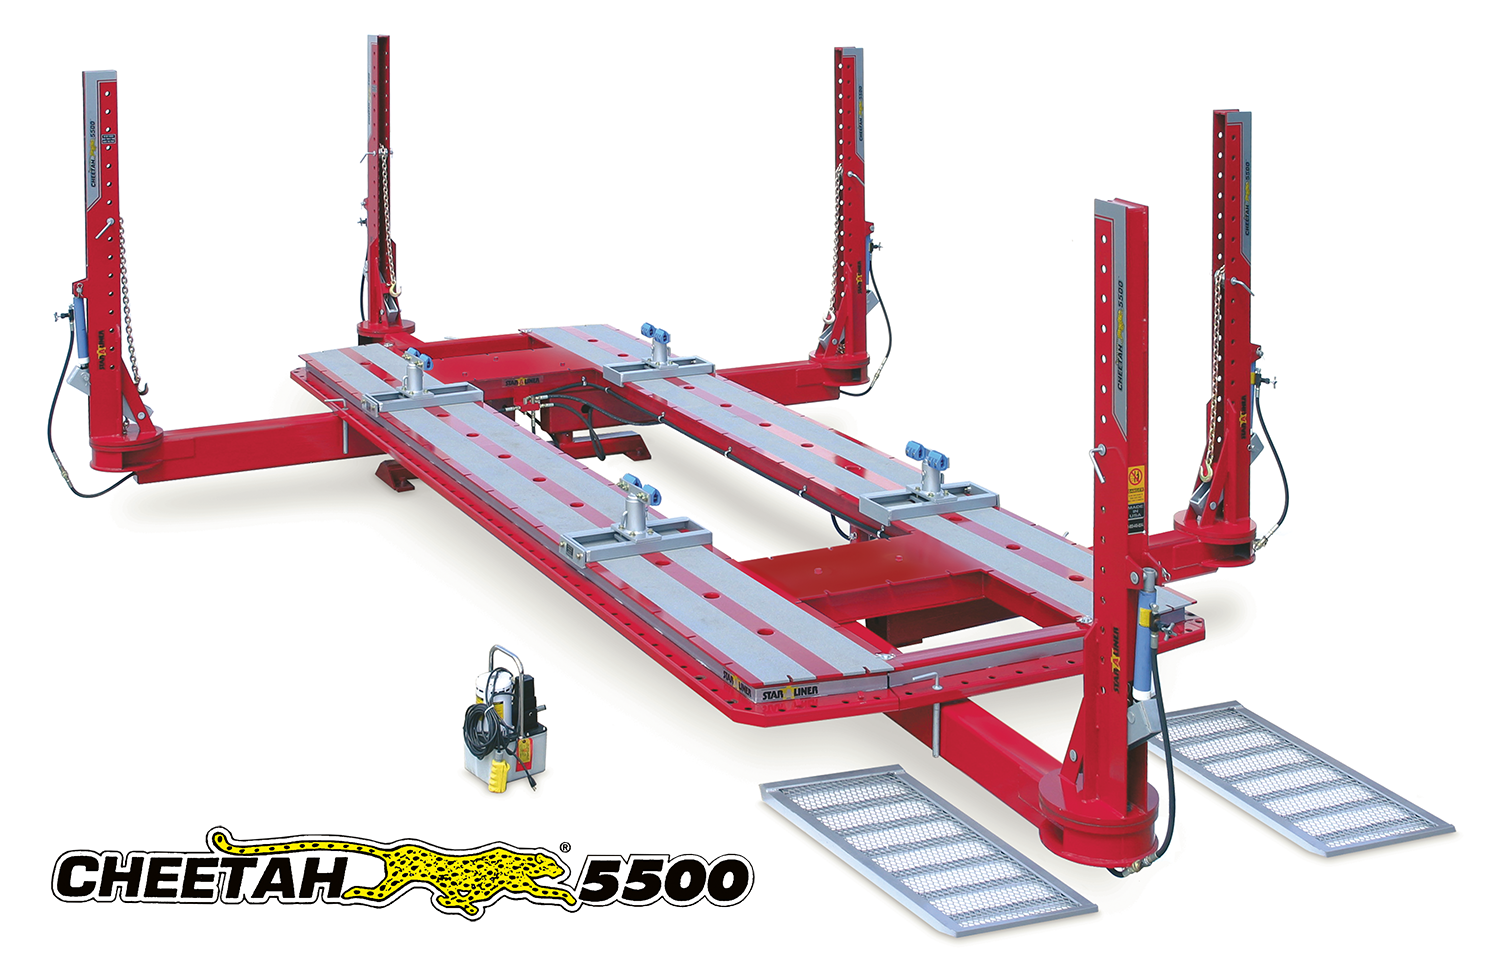 Body Shop Equipment and Frame Rack from Star-A-Liner - 1(800) 445-8244